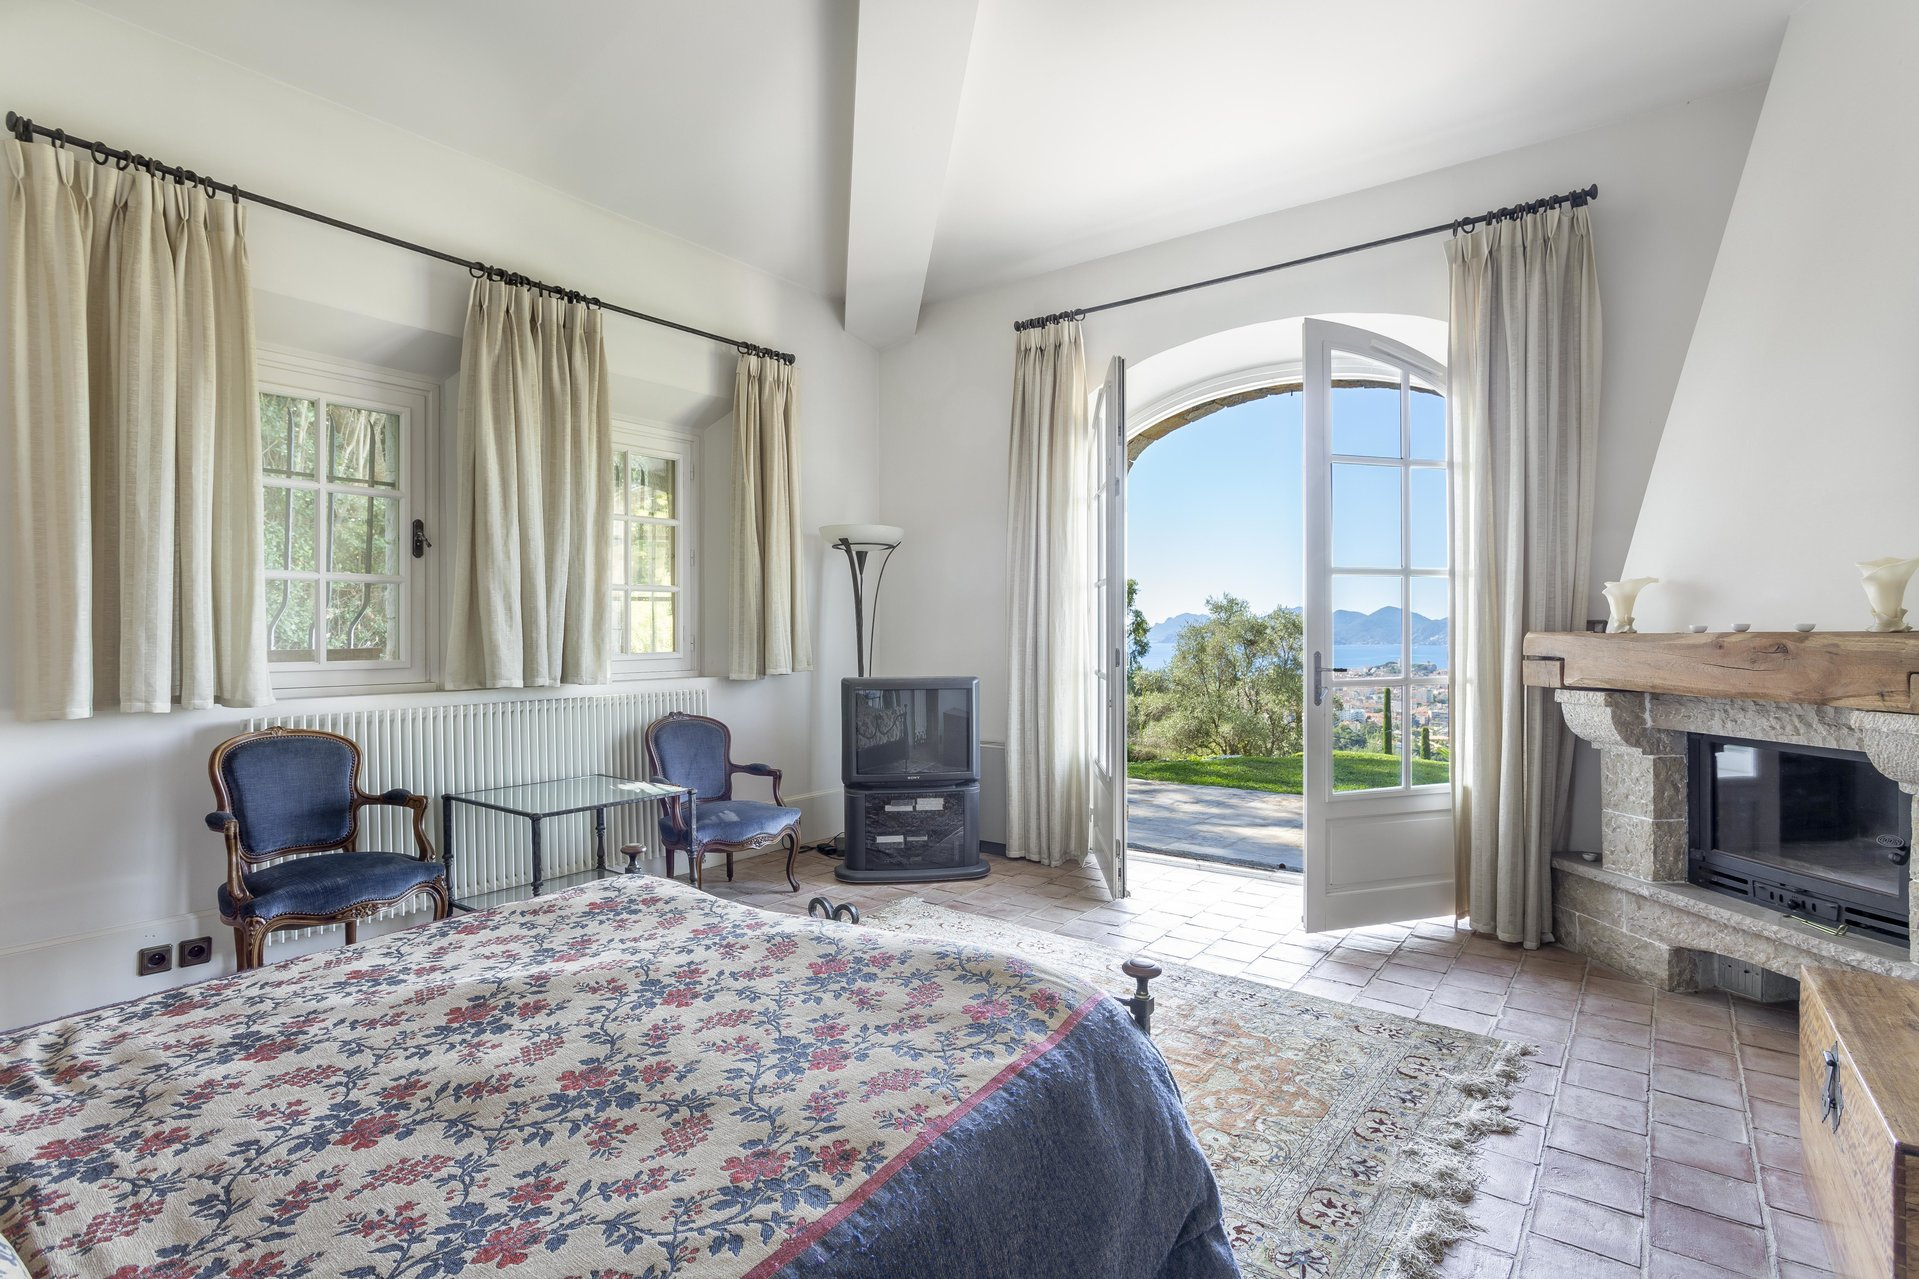 CANNES CALIFORNIE - SPLENDID PANORAMIC SEA VIEW